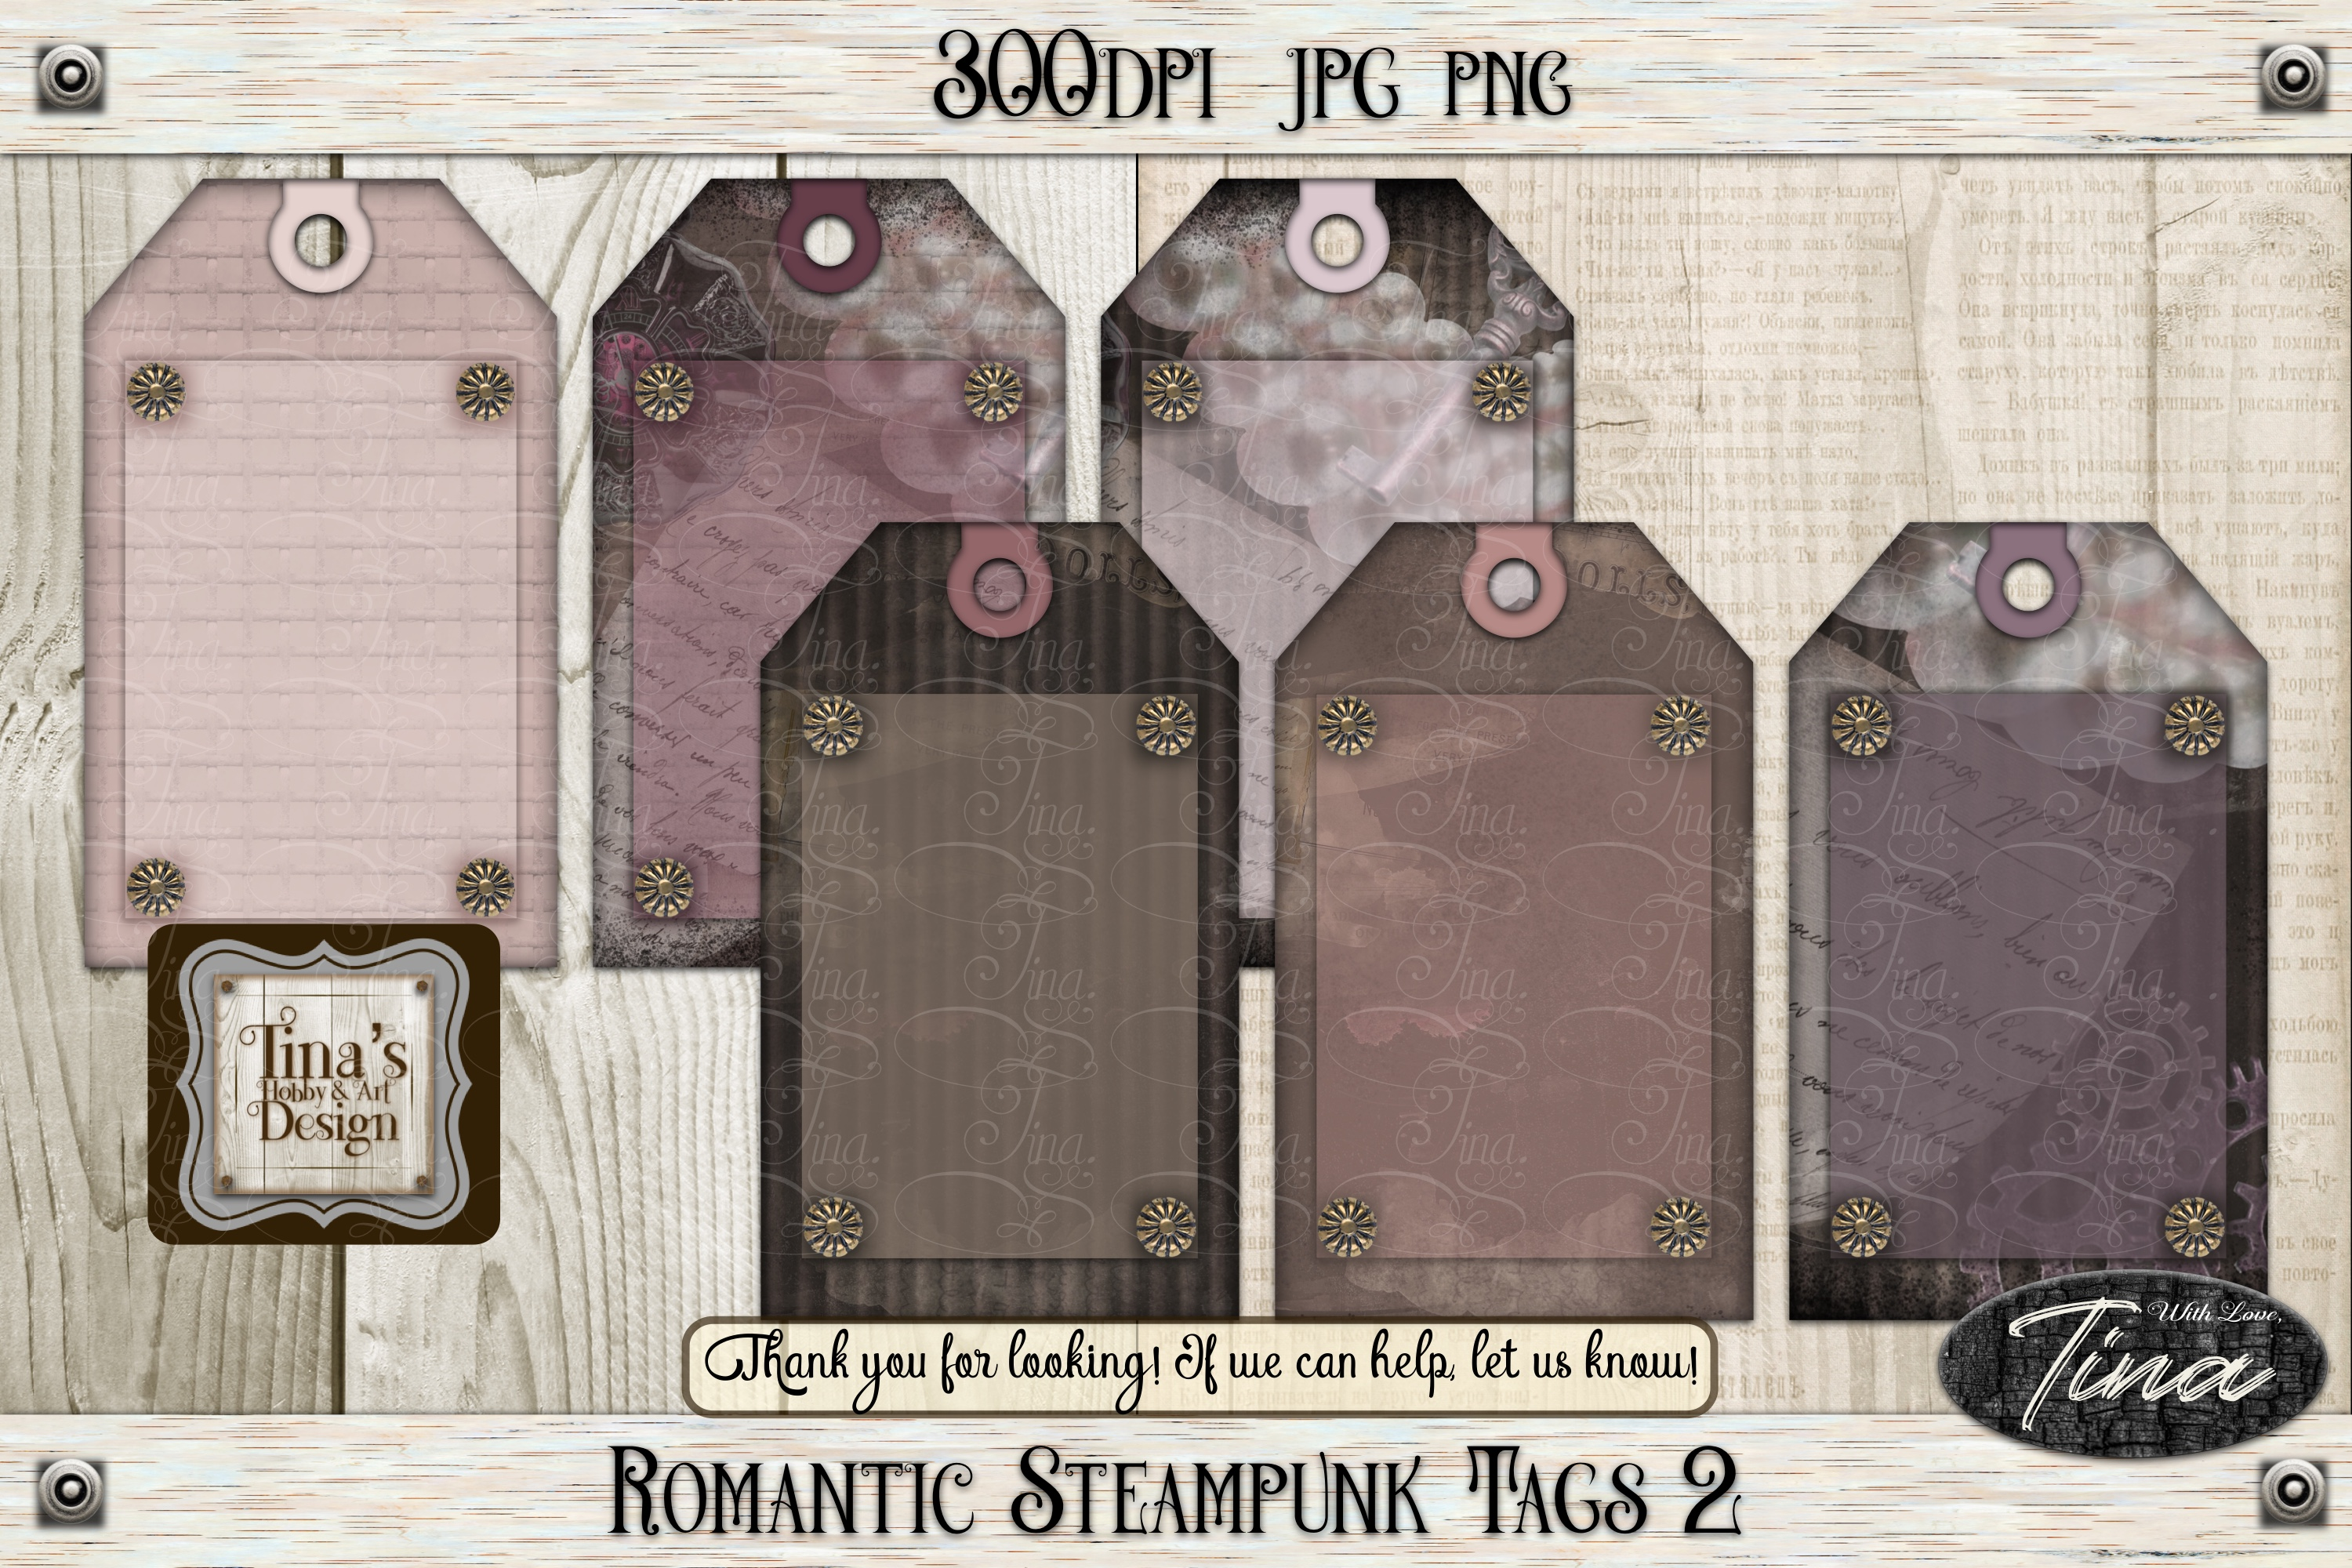 Romantic Steampunk Tags 4 Collage Mauve Grunge 101918RST4 example image 7